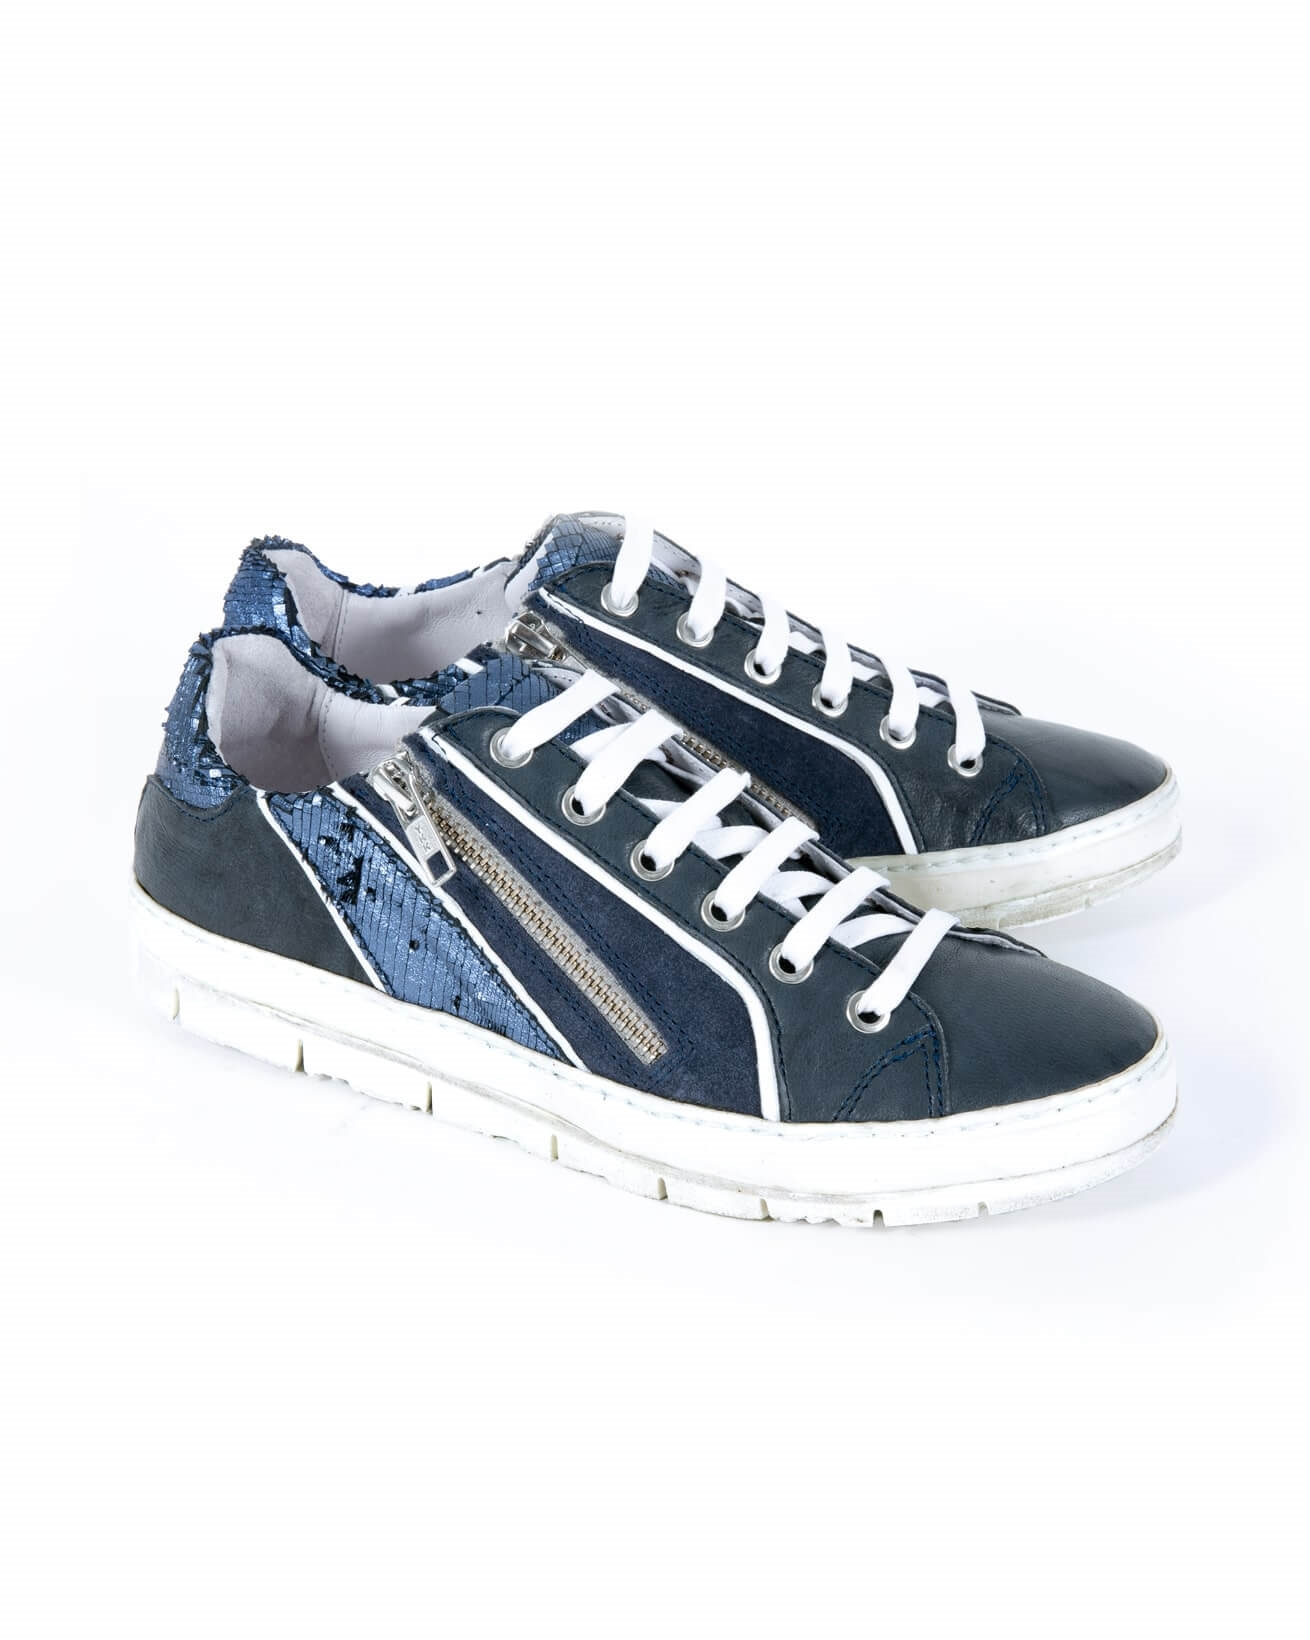 7587_embellished trainers_navy_pair_comp.jpg